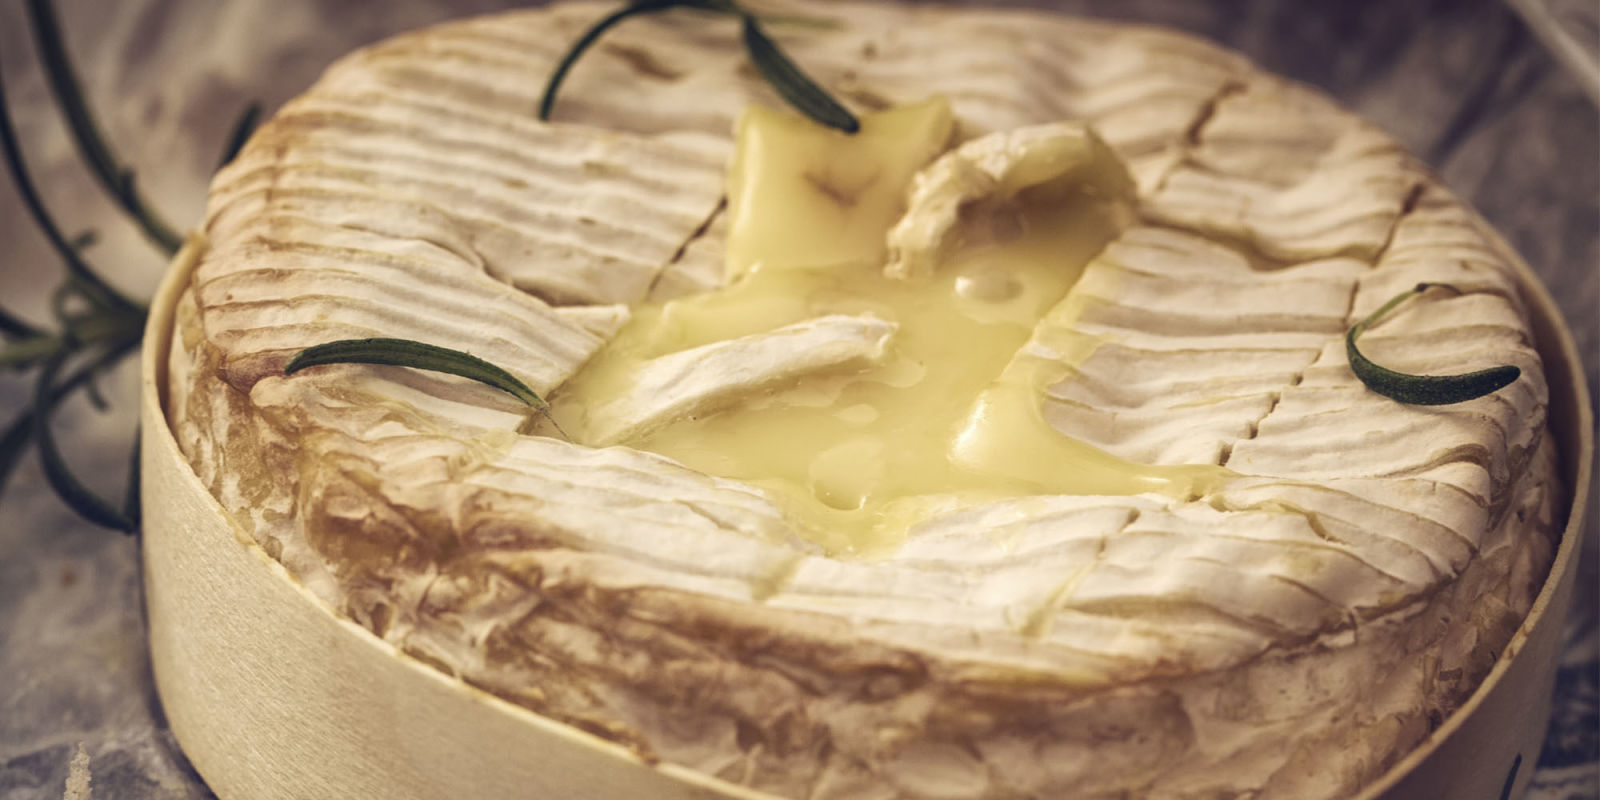 Cheese Has The Same Effect On Your Brain As Heroin, Study Finally Confirms